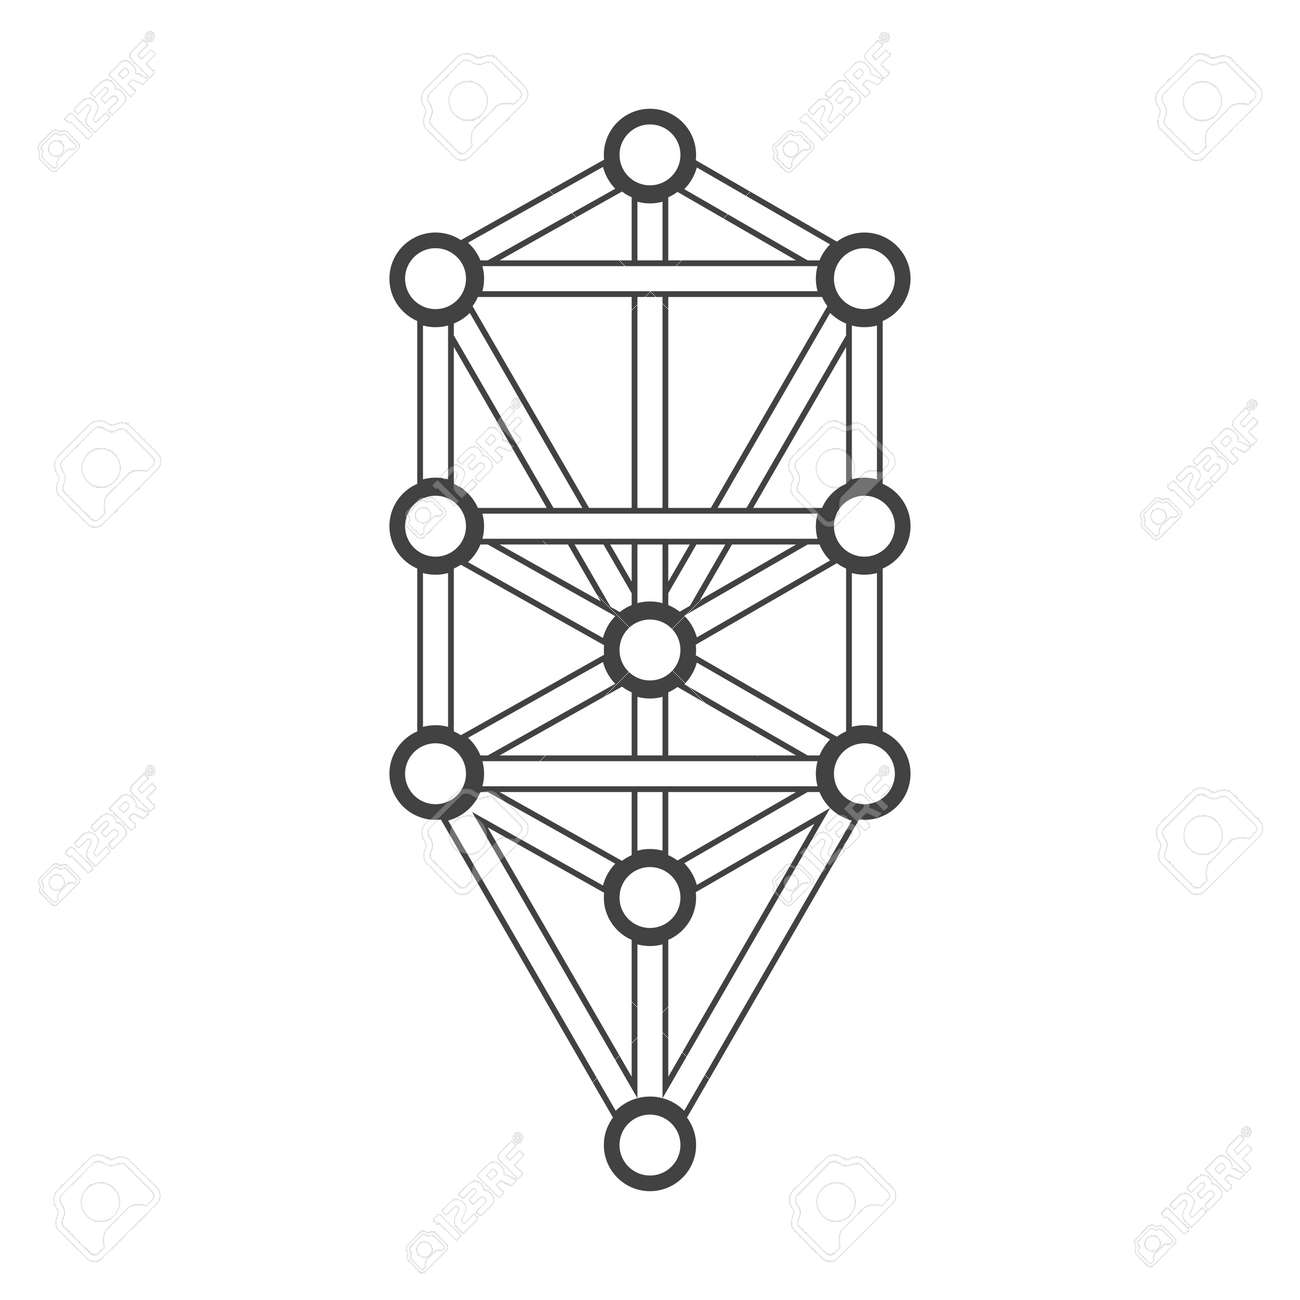 Vector Black Outline Tree Of Life Illustration Kabbalah Diagram ...